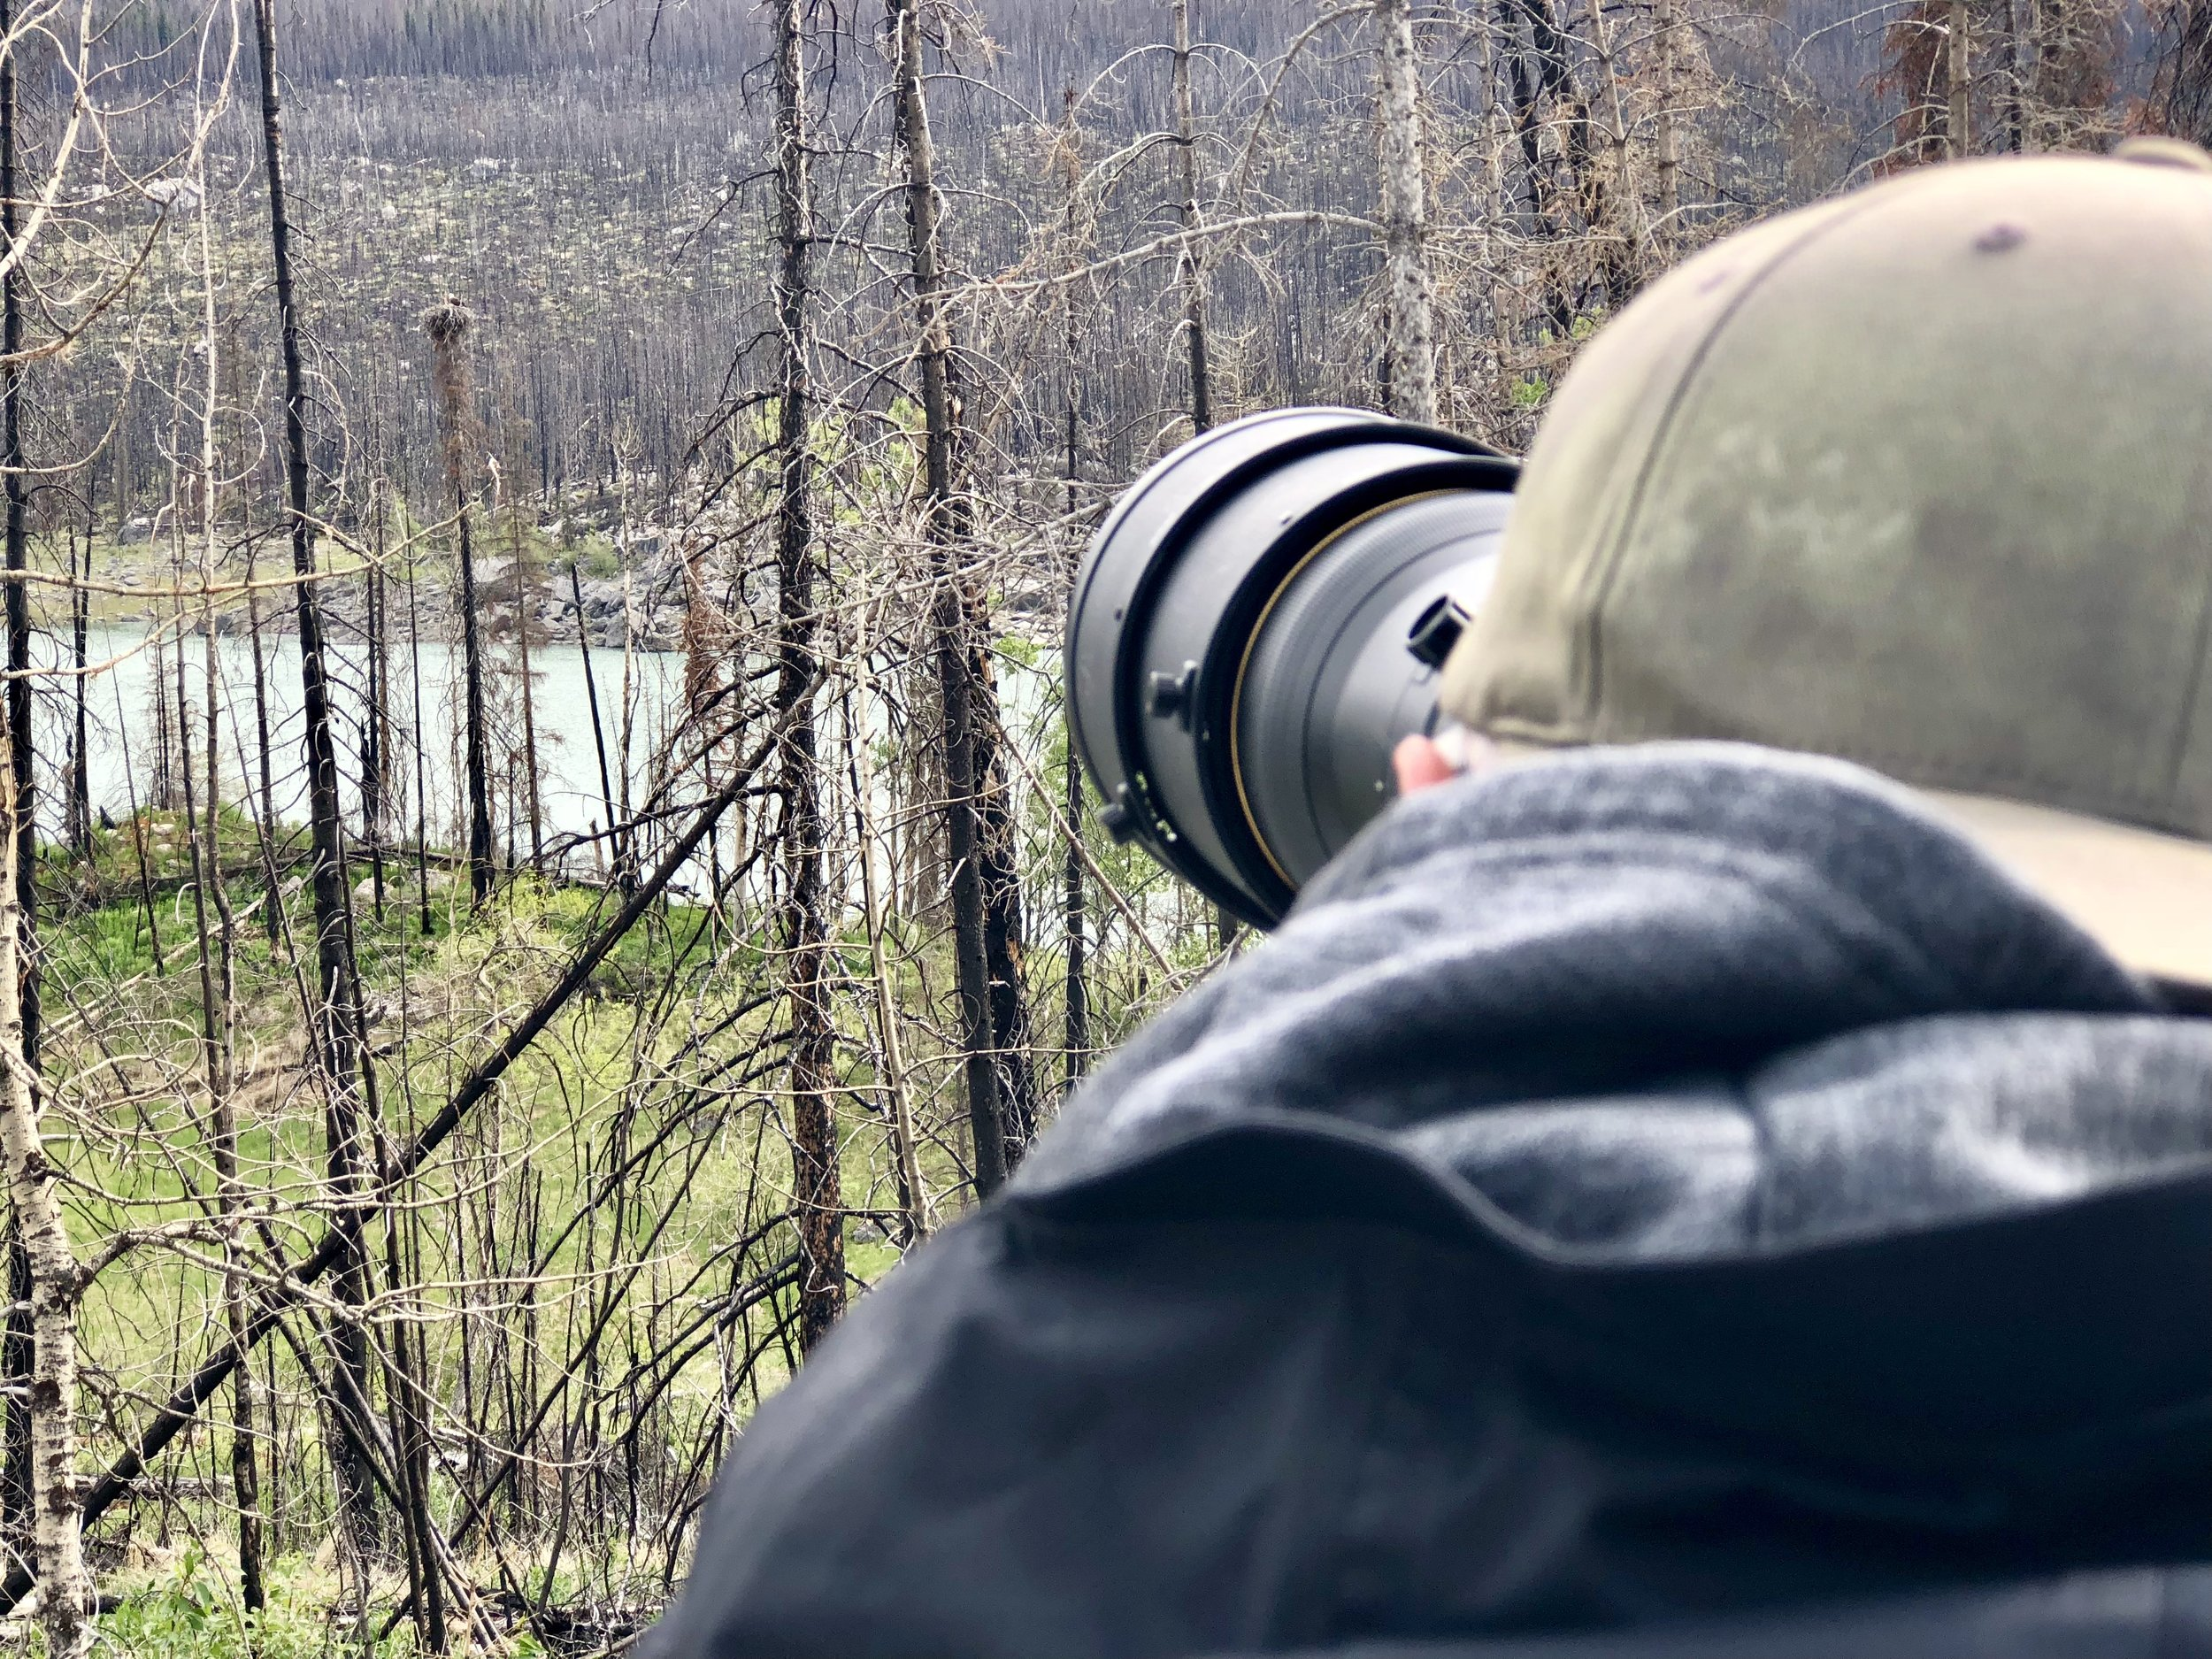 RON PHOTOGRAPHING EAGLE NEST.jpg